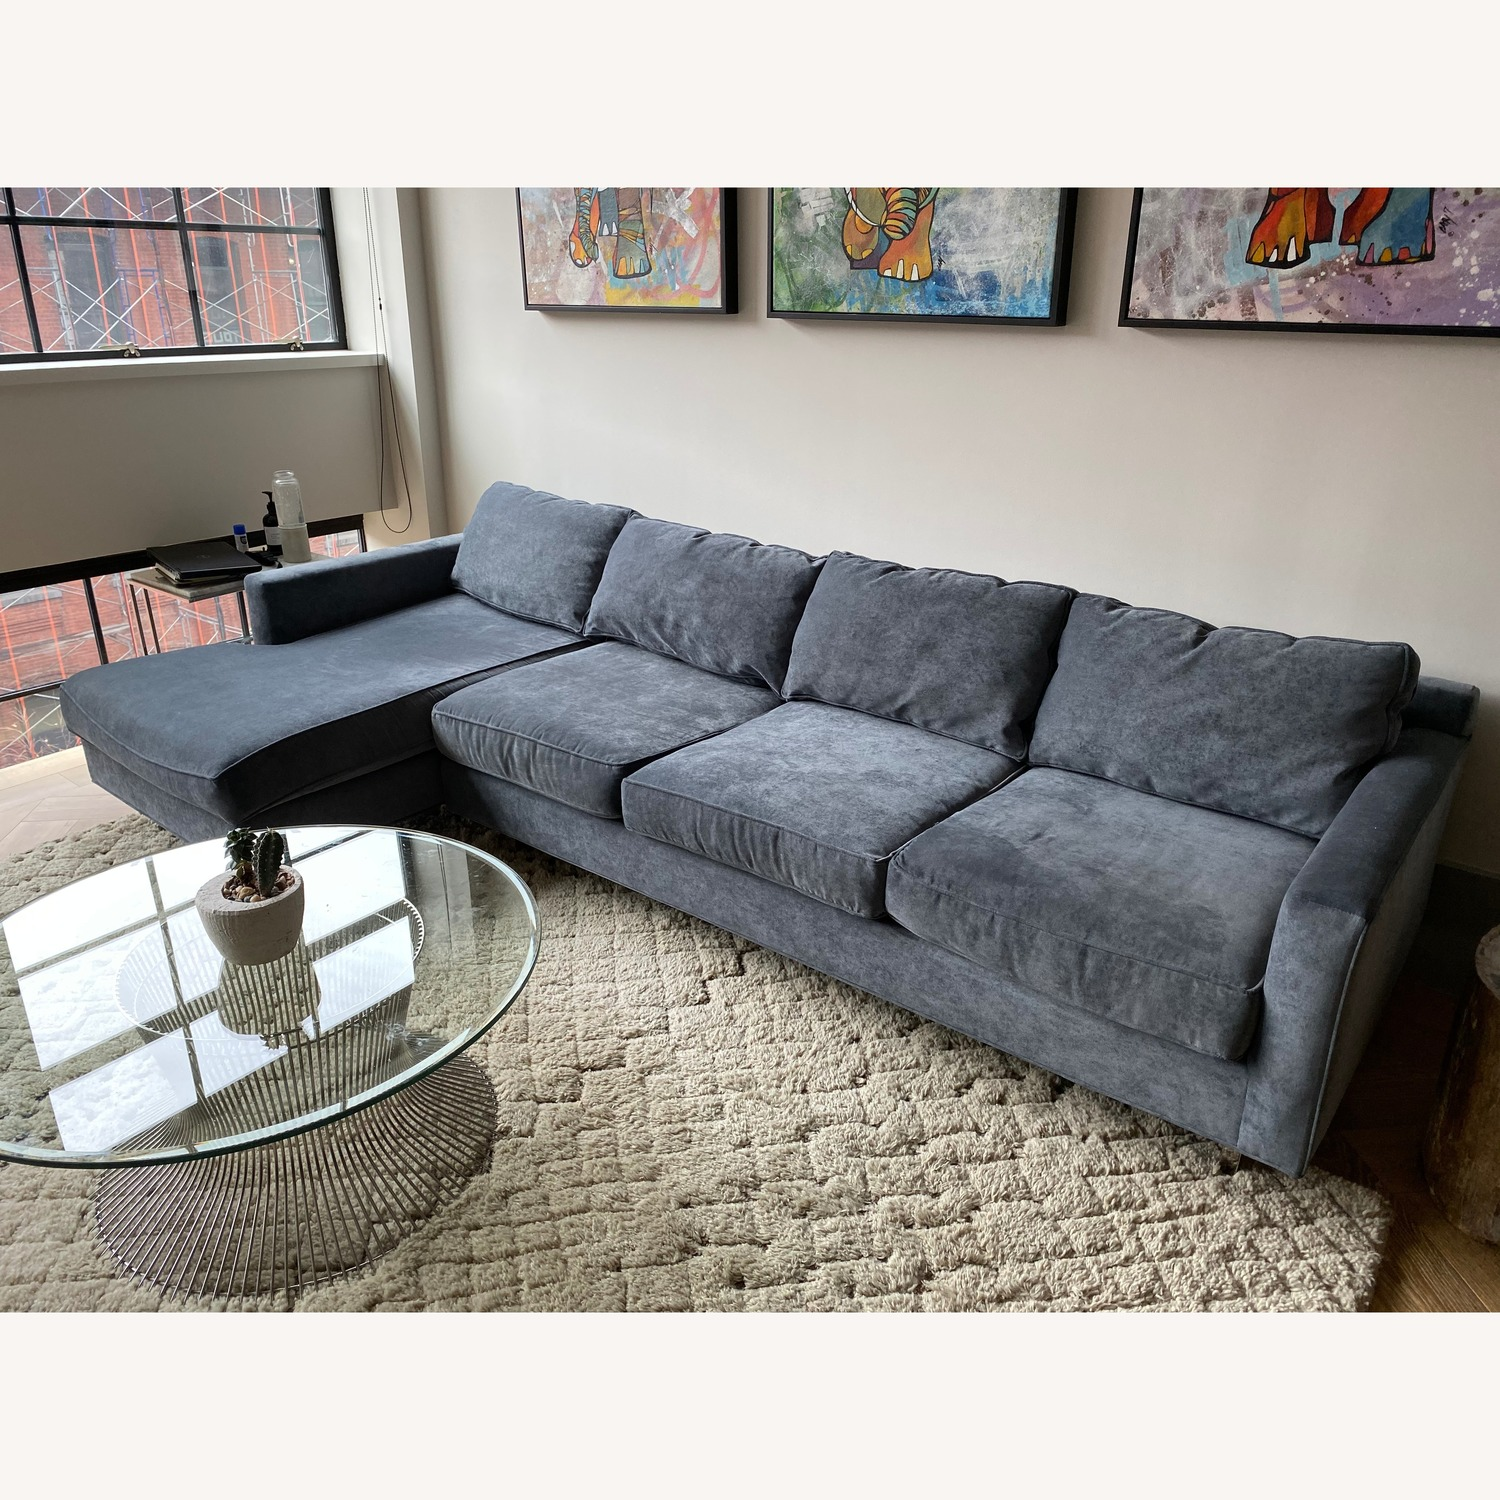 Mitchell Gold + Bob Williams Hunter Sectional Sofa - image-1